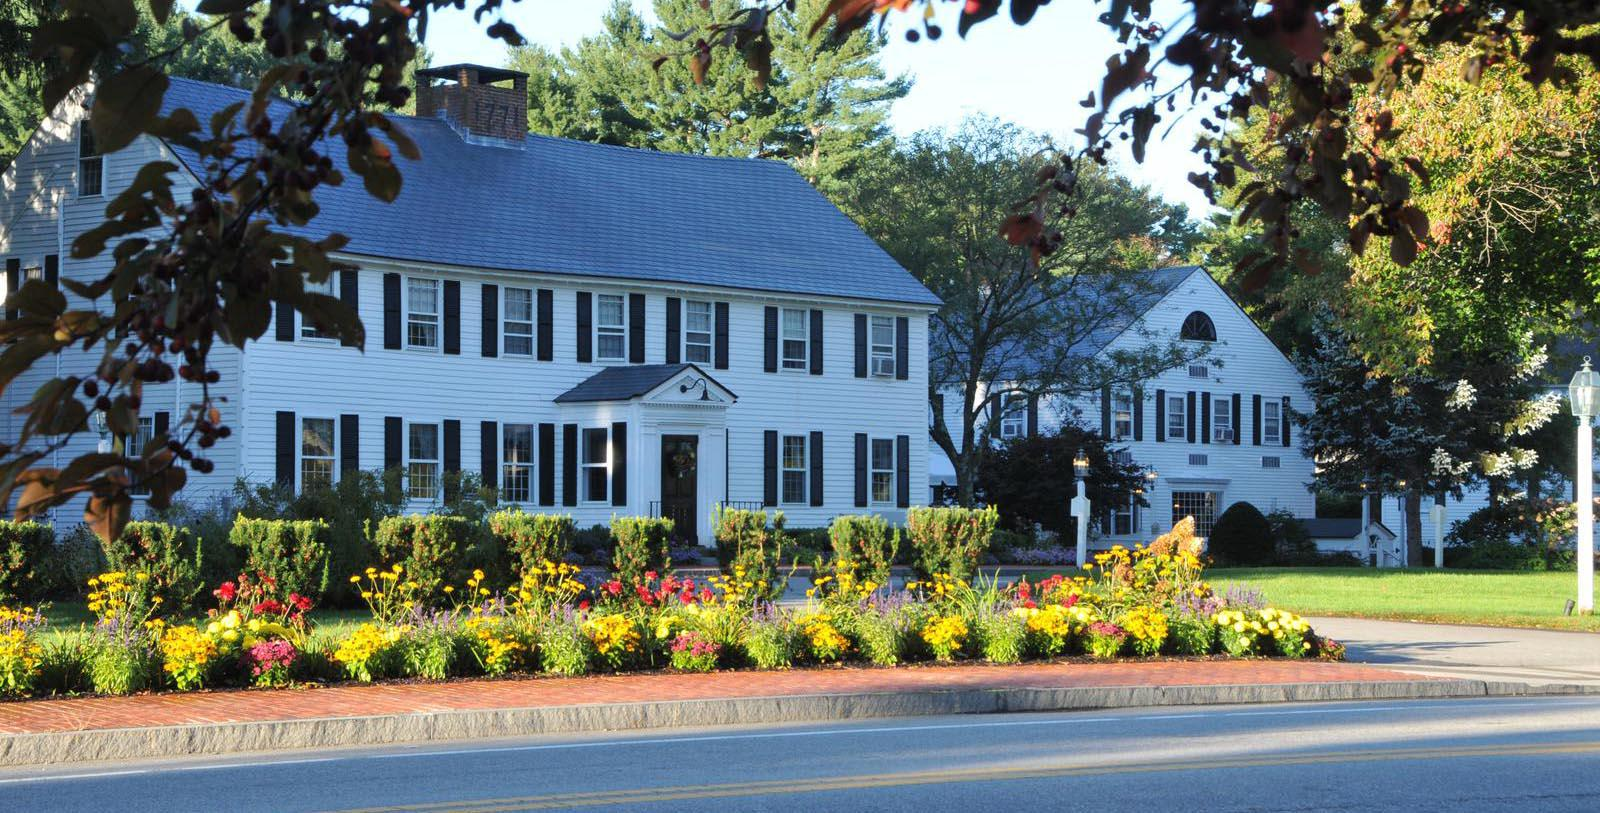 Image of Exterior Publick House Historic Inn, 1771, Member of Historic Hotels of America, in Sturbridge, Massachusetts, Discover